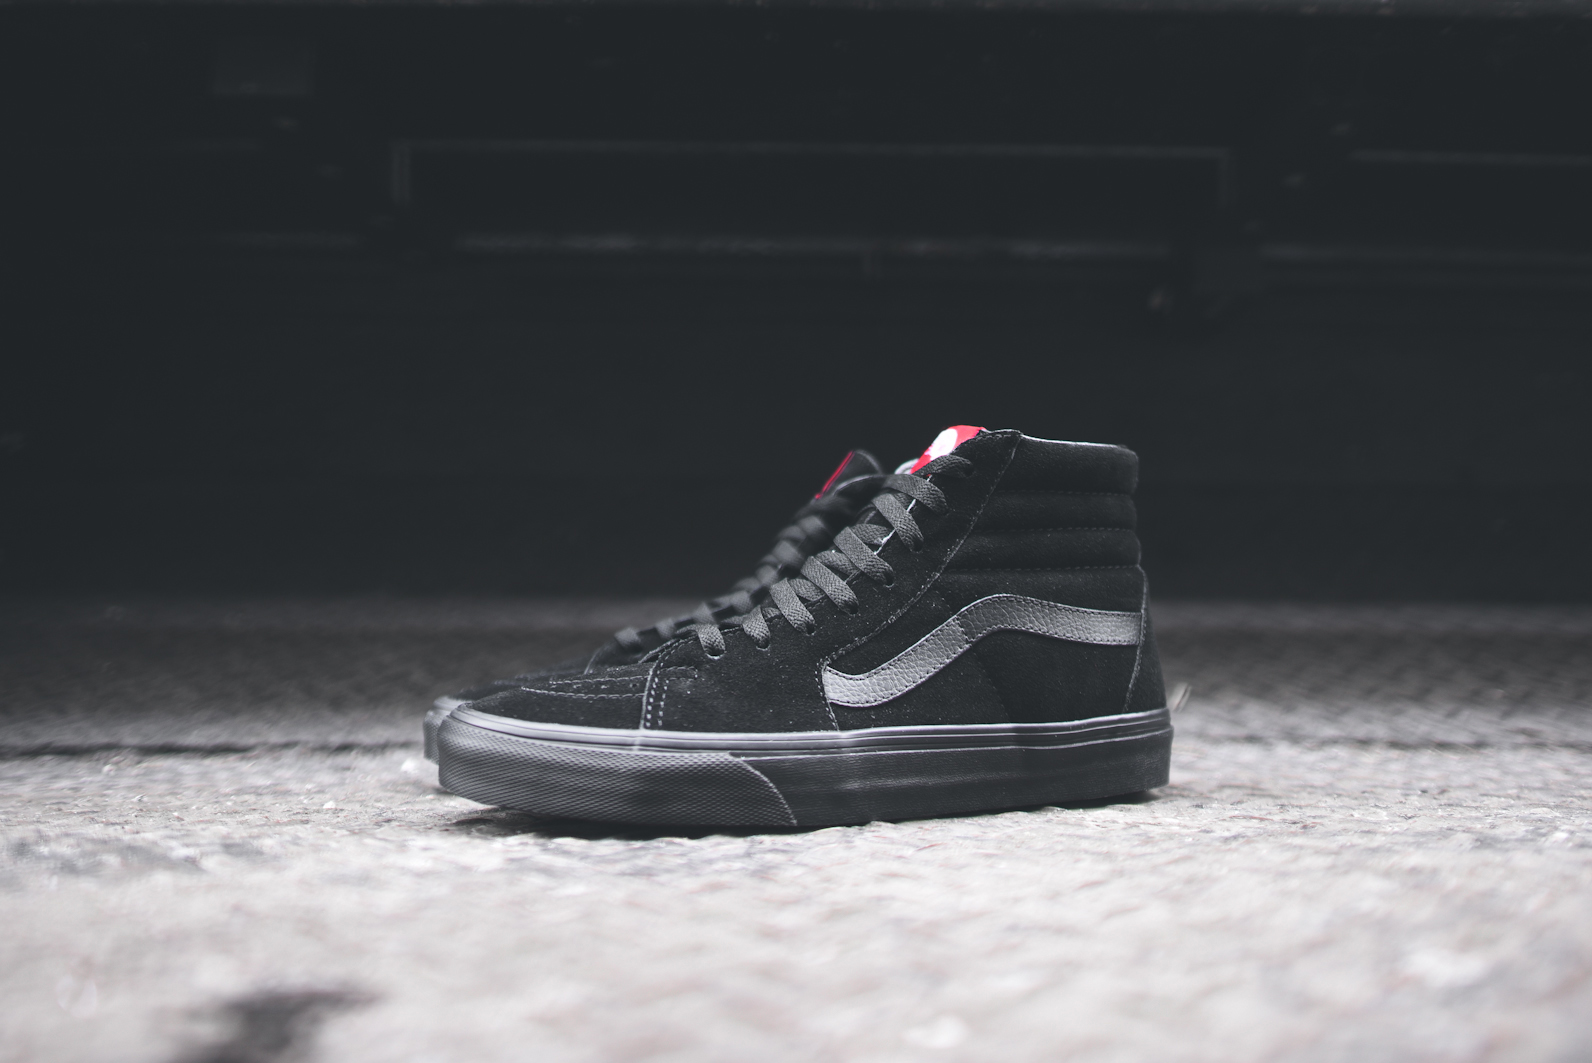 39e7cd4c5ff7cb Vans Sk8 Hi Triple Black Size 8.5 - Hi-Top Sneakers for Sale - Grailed